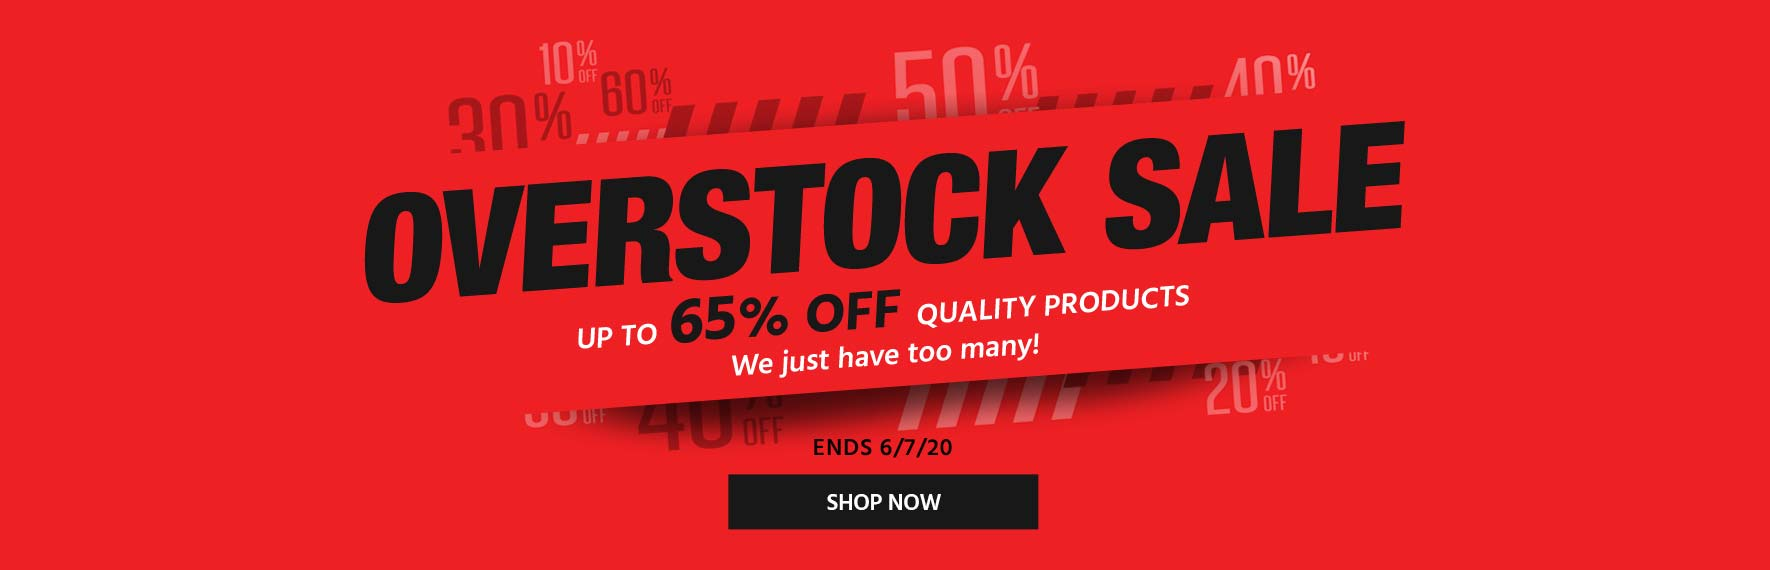 Overstock Sale  Up to 65% Off quality products we just have too many of!  Ends 6/7/20 Shop Now >